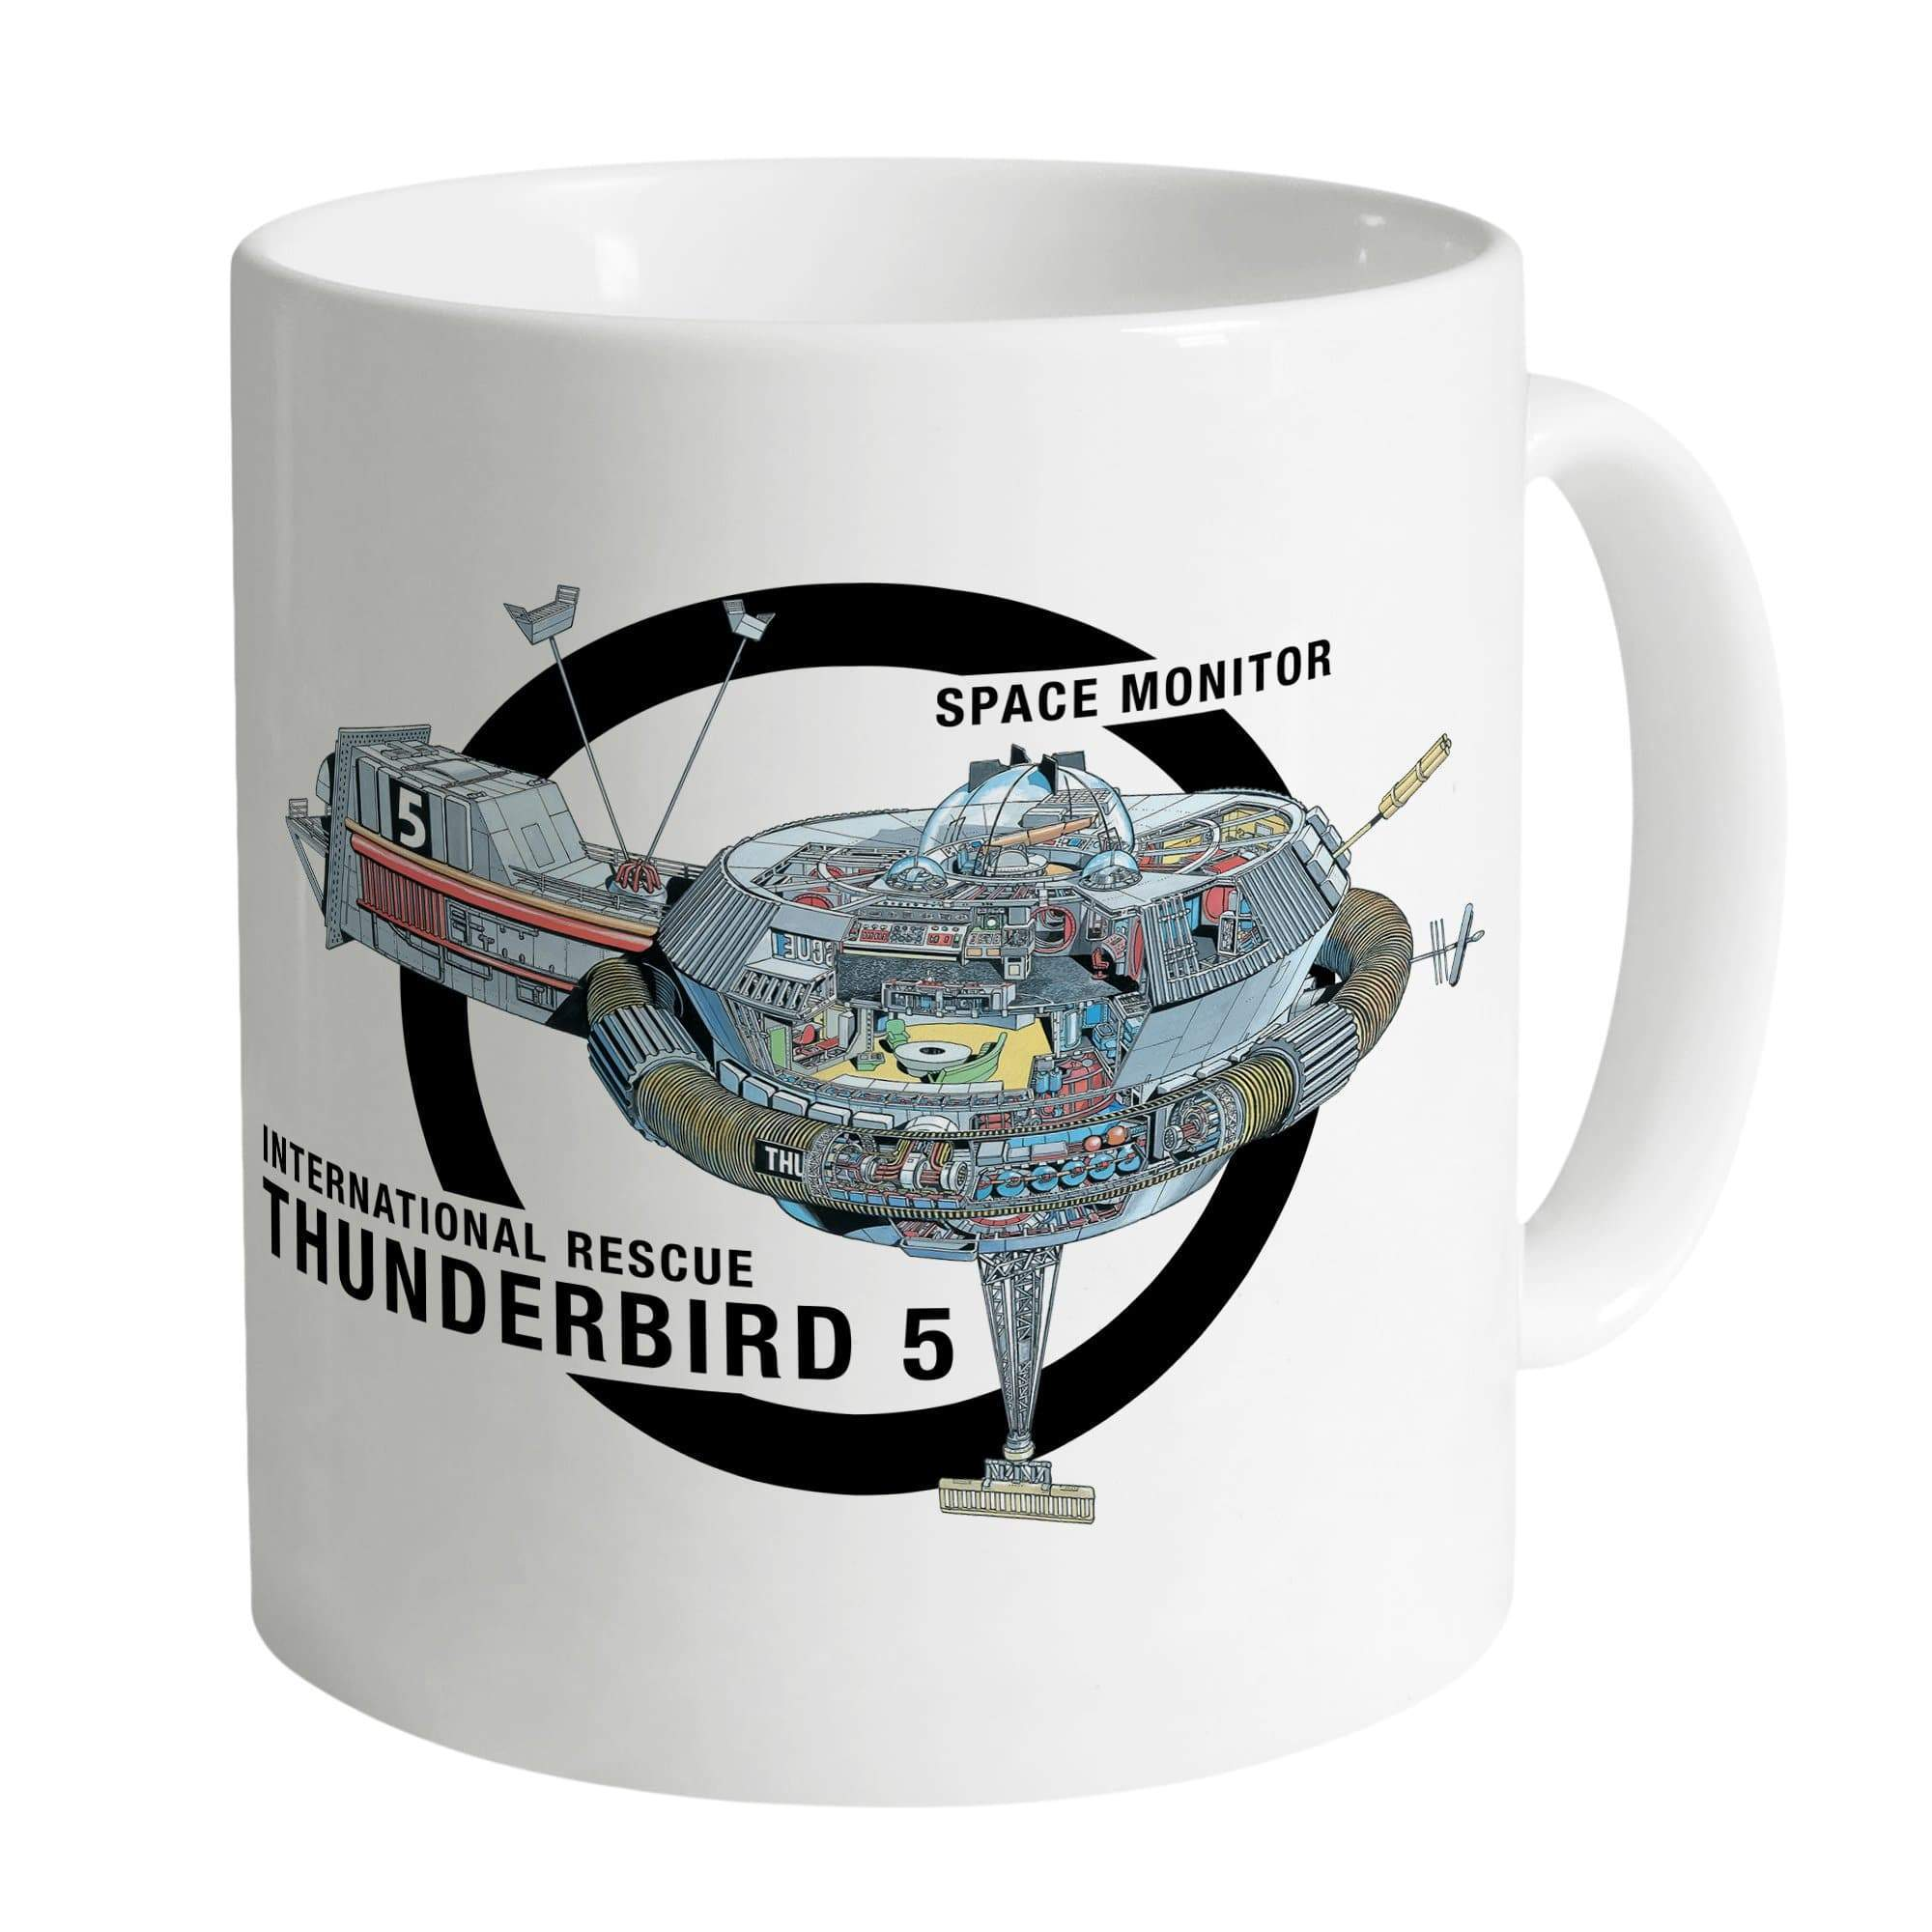 Thunderbird 5 Cutaway White Mug [Official & Exclusive] - The Gerry Anderson Store